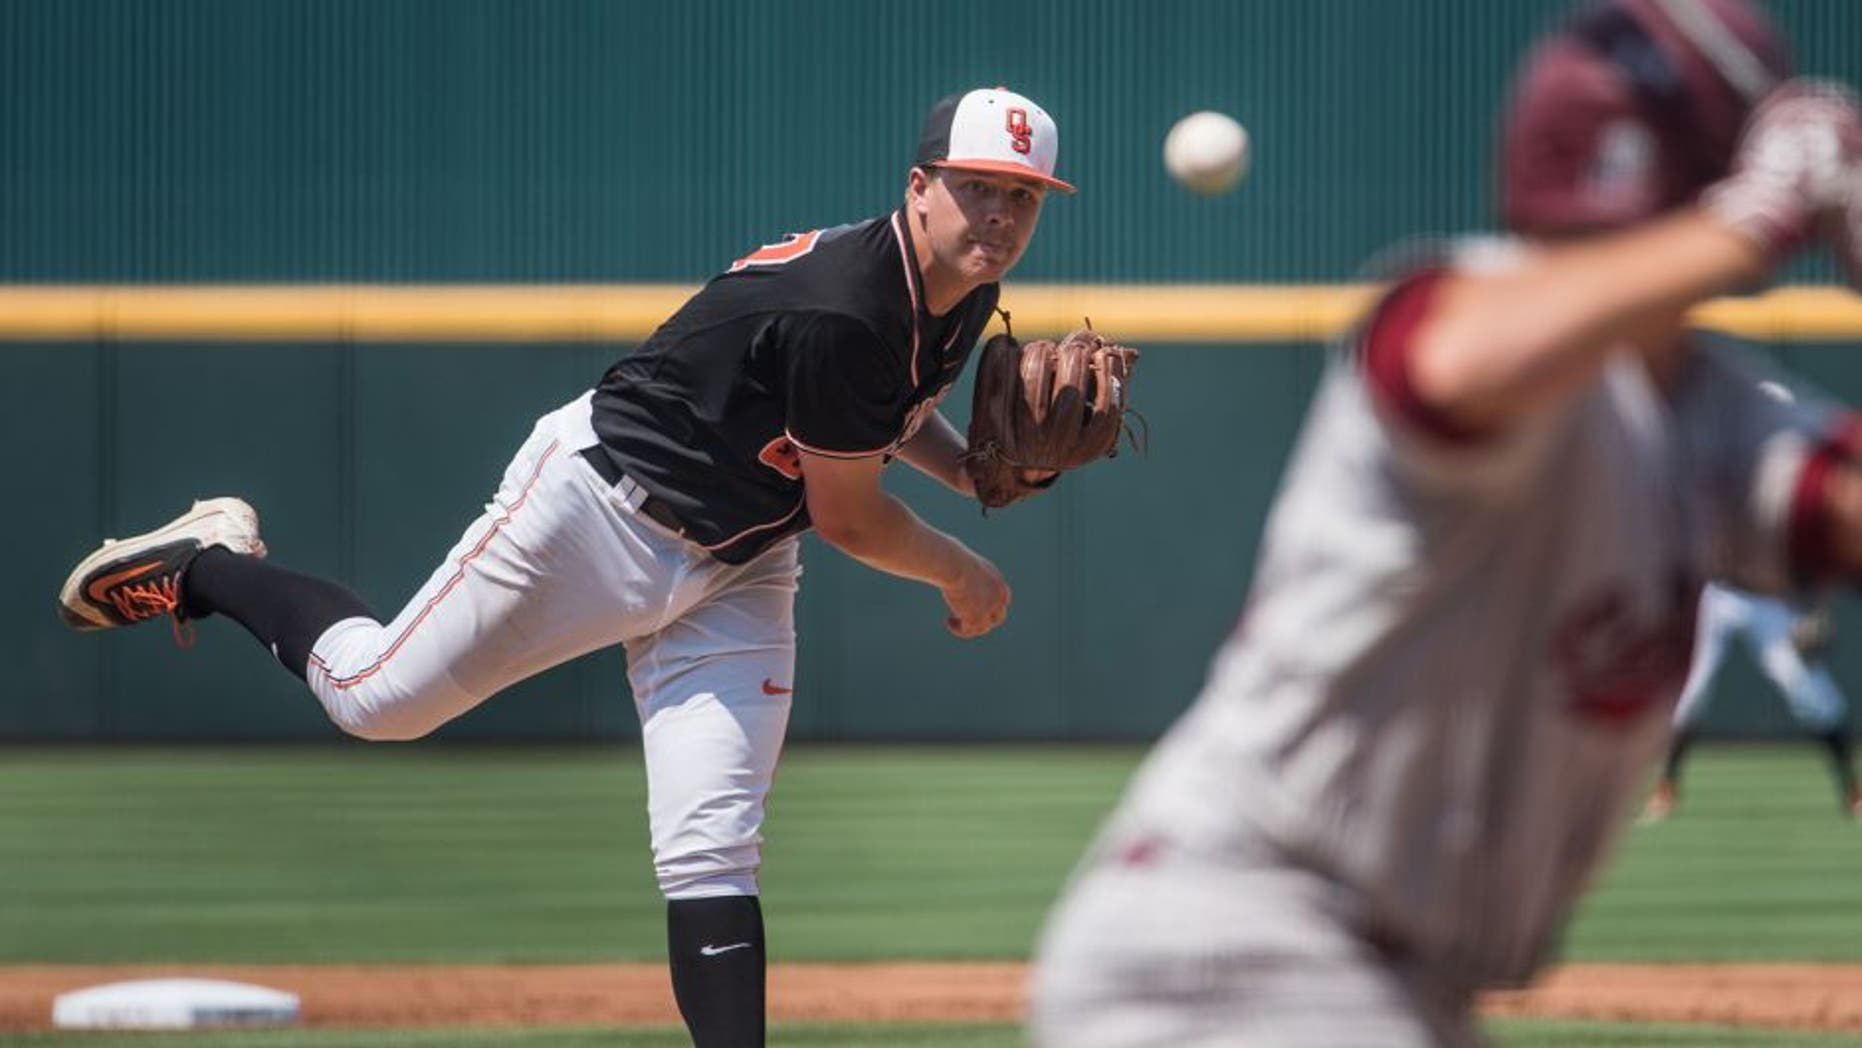 Oklahoma State pitcher Tyler Buffett delivers a pitch during an NCAA college baseball tournament super regional game against South Carolina on Sunday, June 12, 2016, in Columbia, S.C. (AP Photo/Sean Rayford)